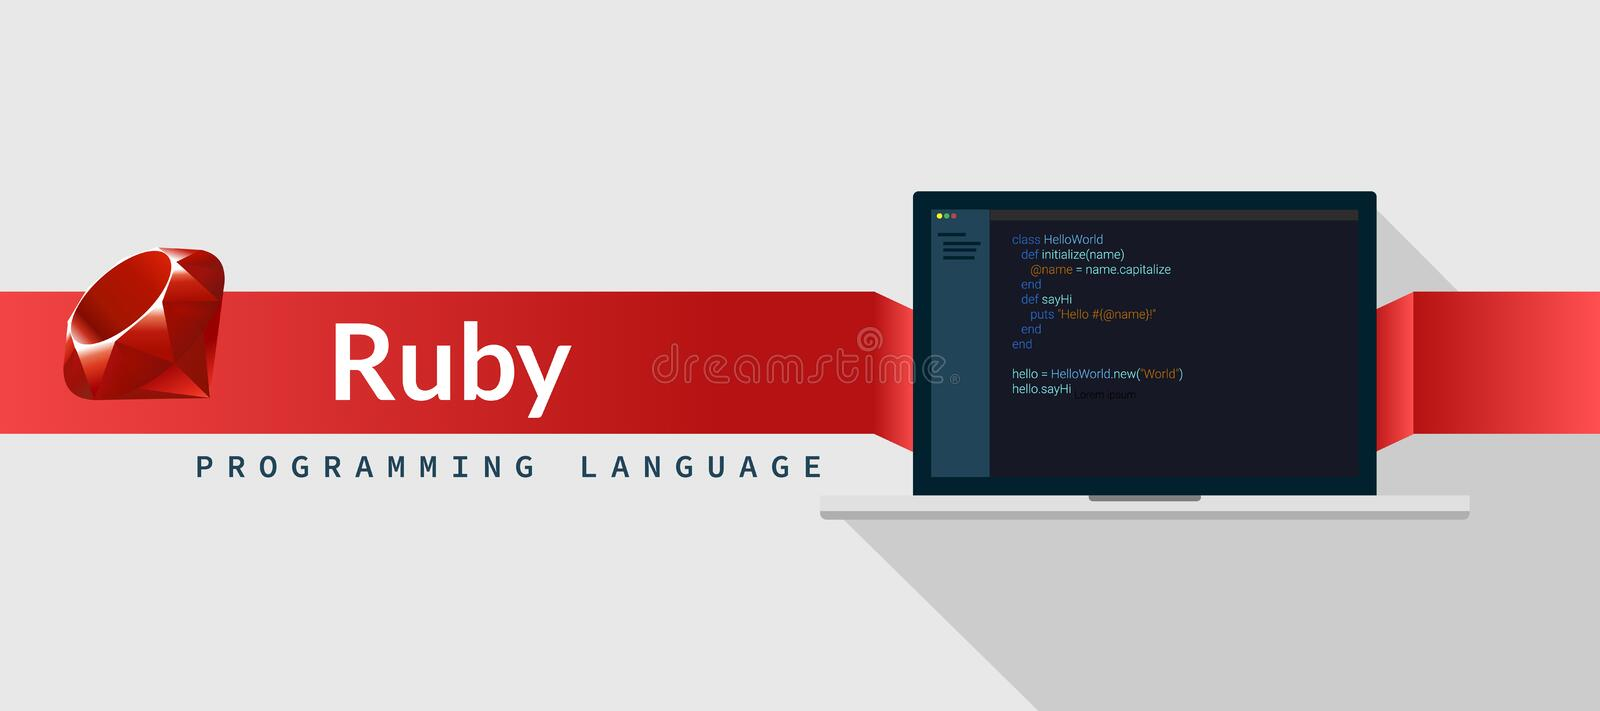 Ruby programming language with script code on laptop screen, programming language code illustration.  vector illustration